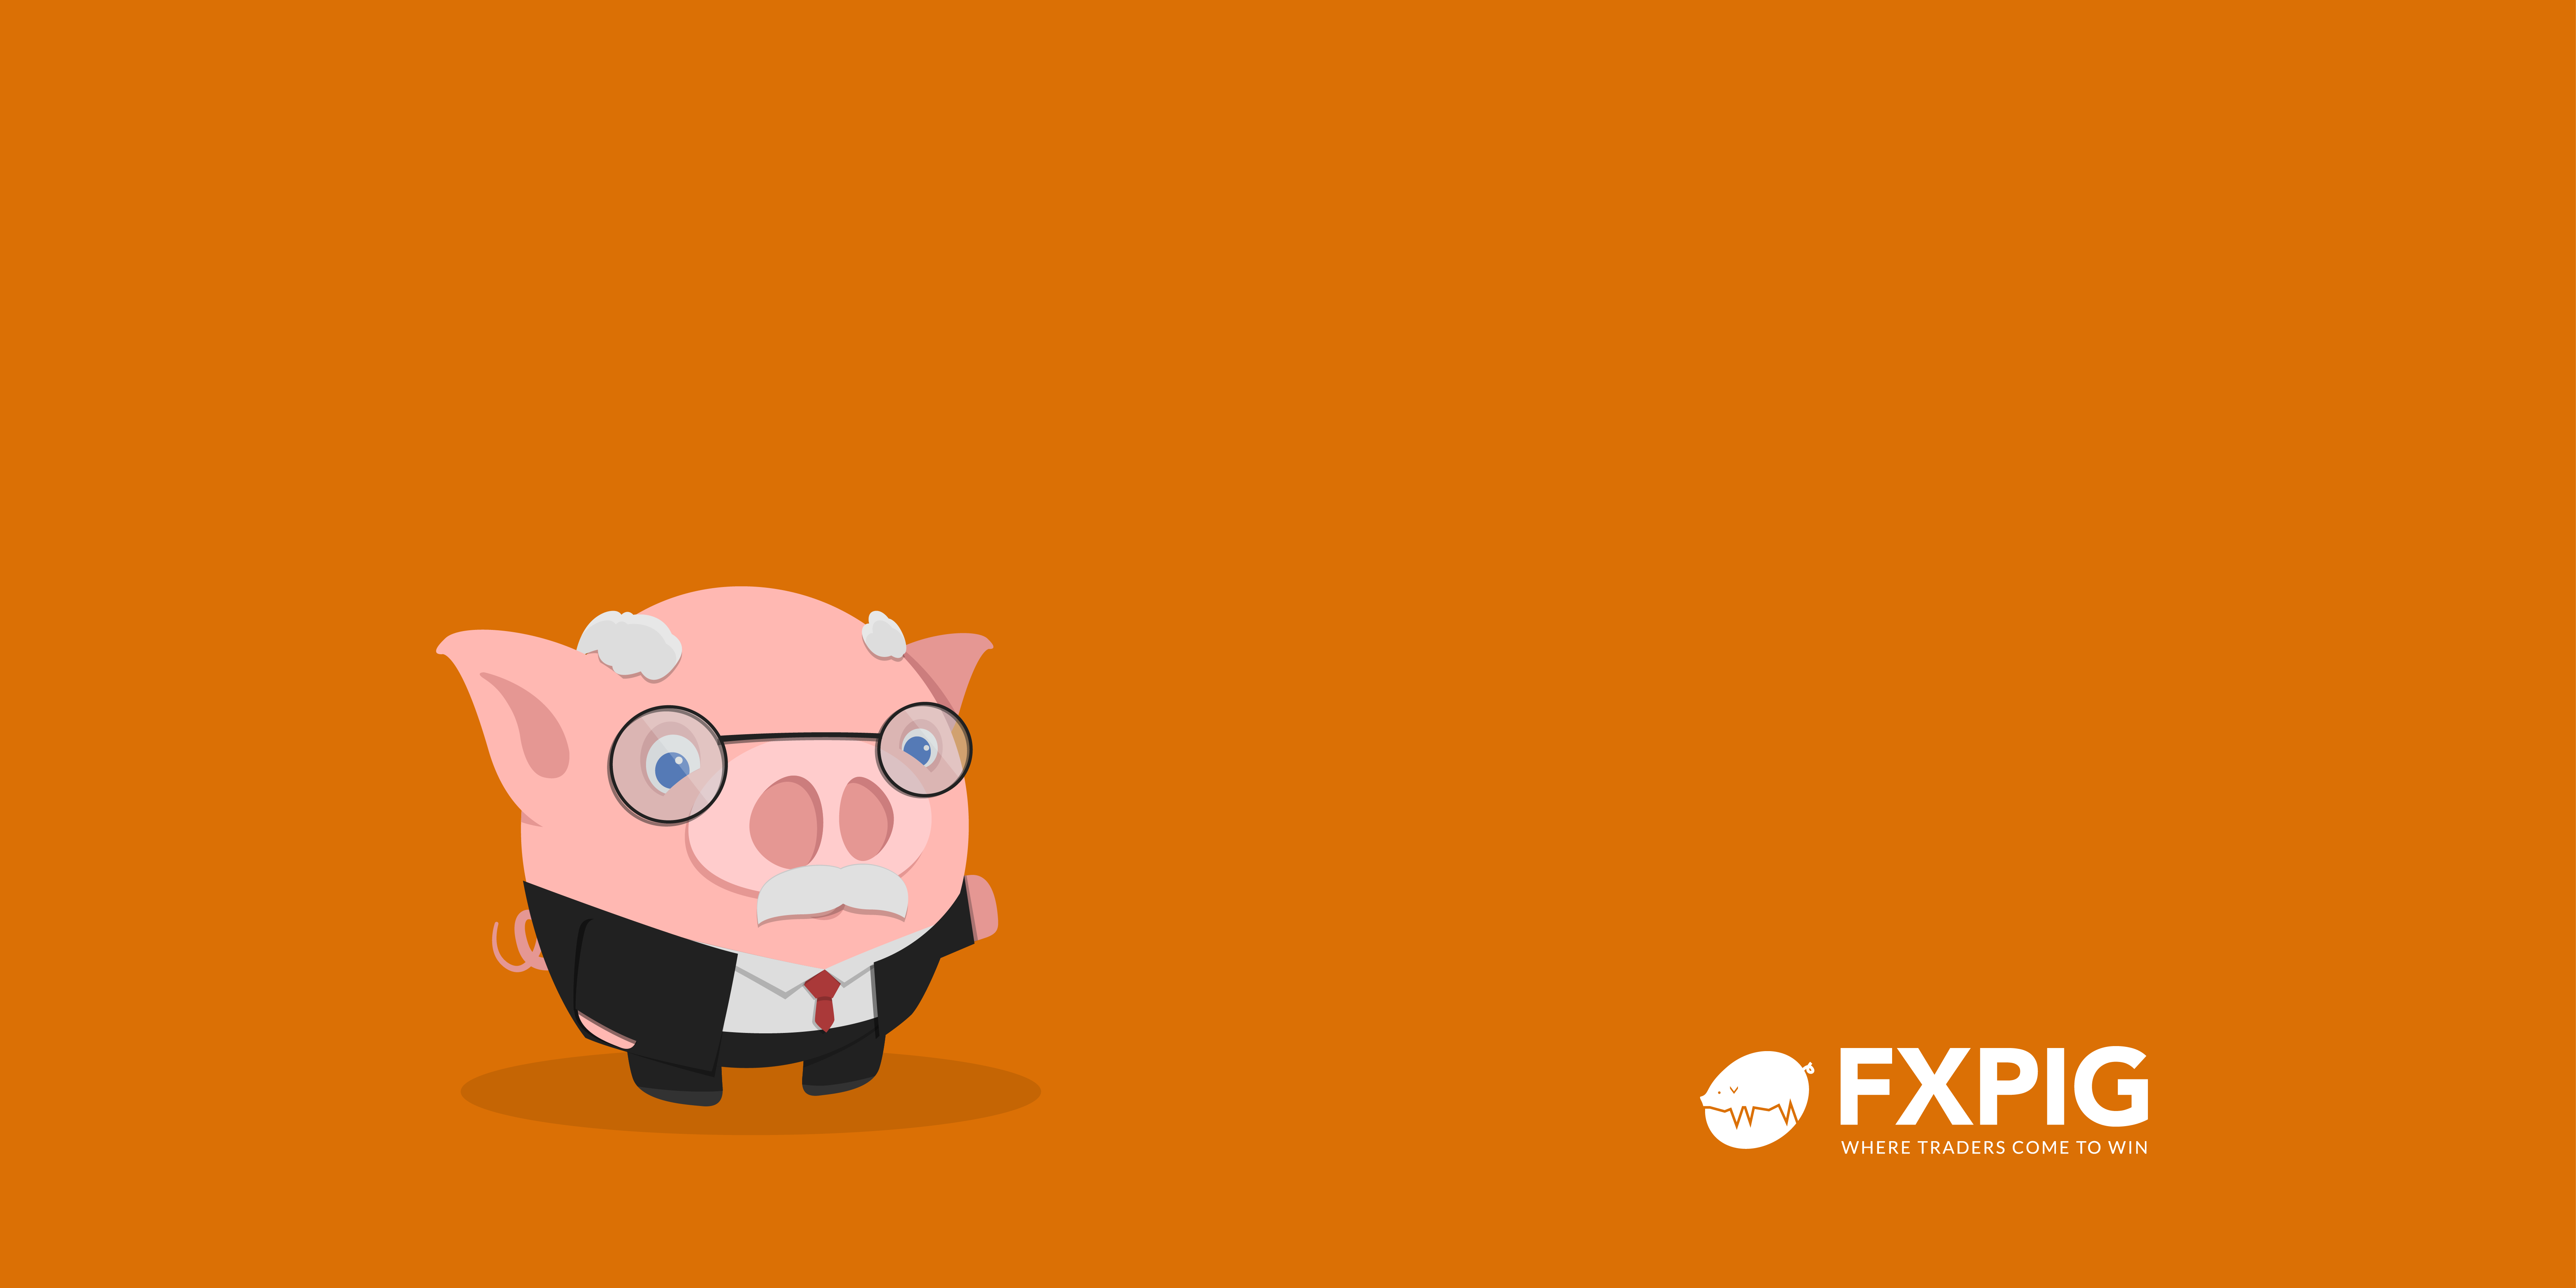 Forex_trading_wsidom_Dont-lose_FXPIG